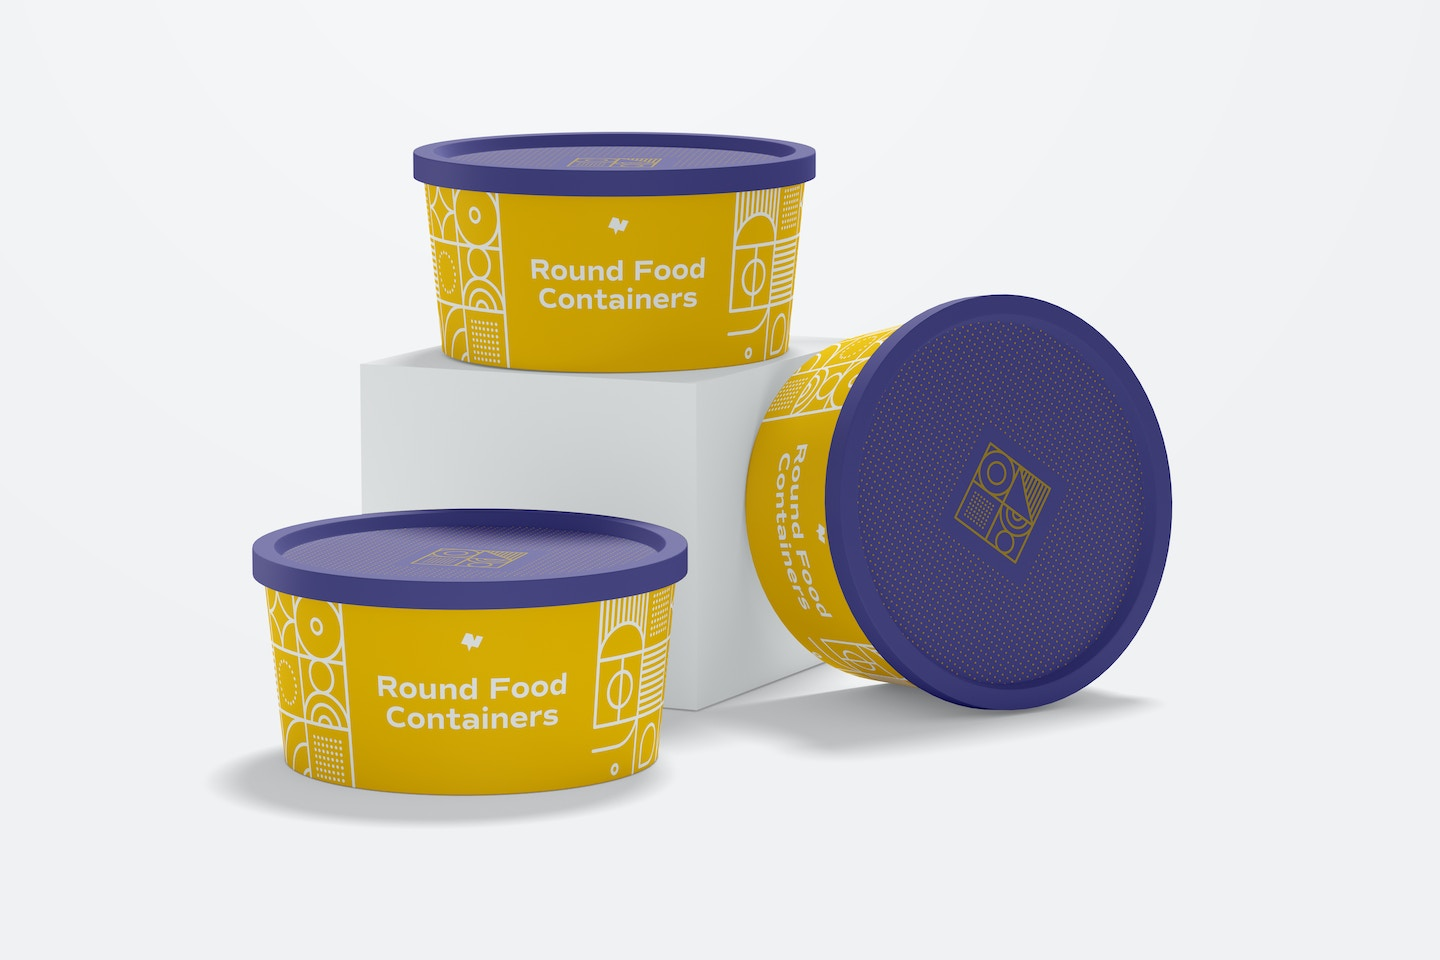 Round Plastic Food Delivery Container Set Mockup